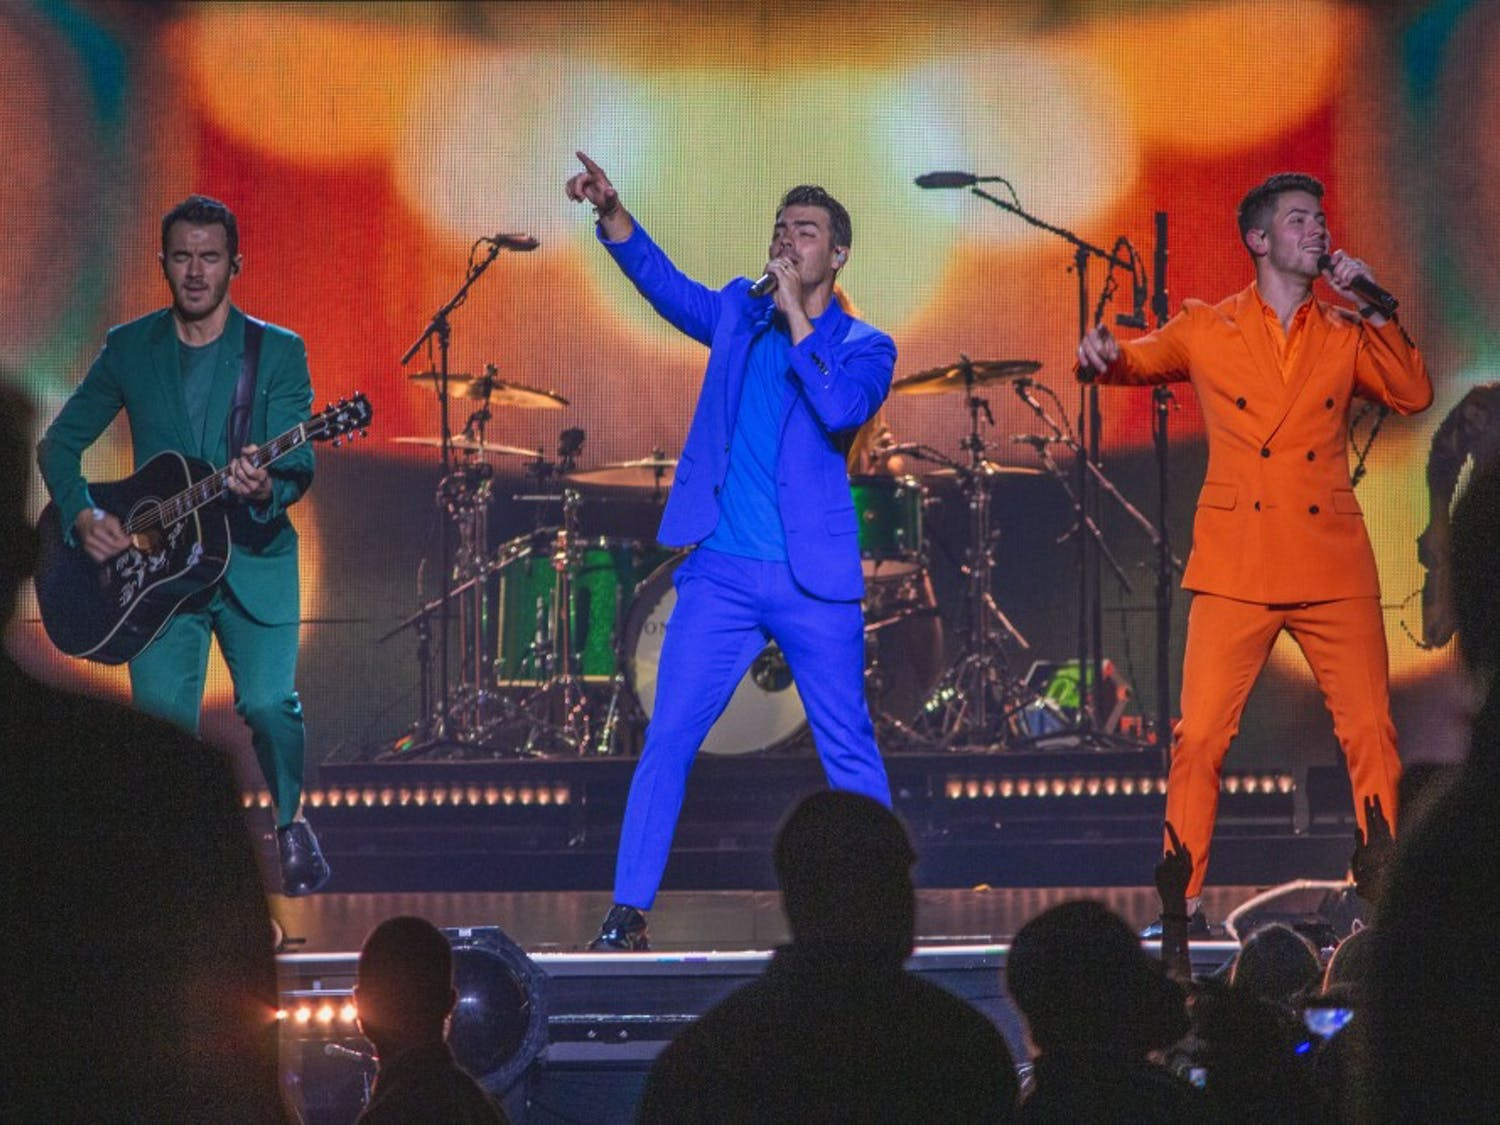 The Jonas Brother lit up the stage in vibrant colors while they entertained the crowd at the KeyBank Center Tuesday night. From left to right: Kevin Jonas, Joe Jonas and Nick Jonas.